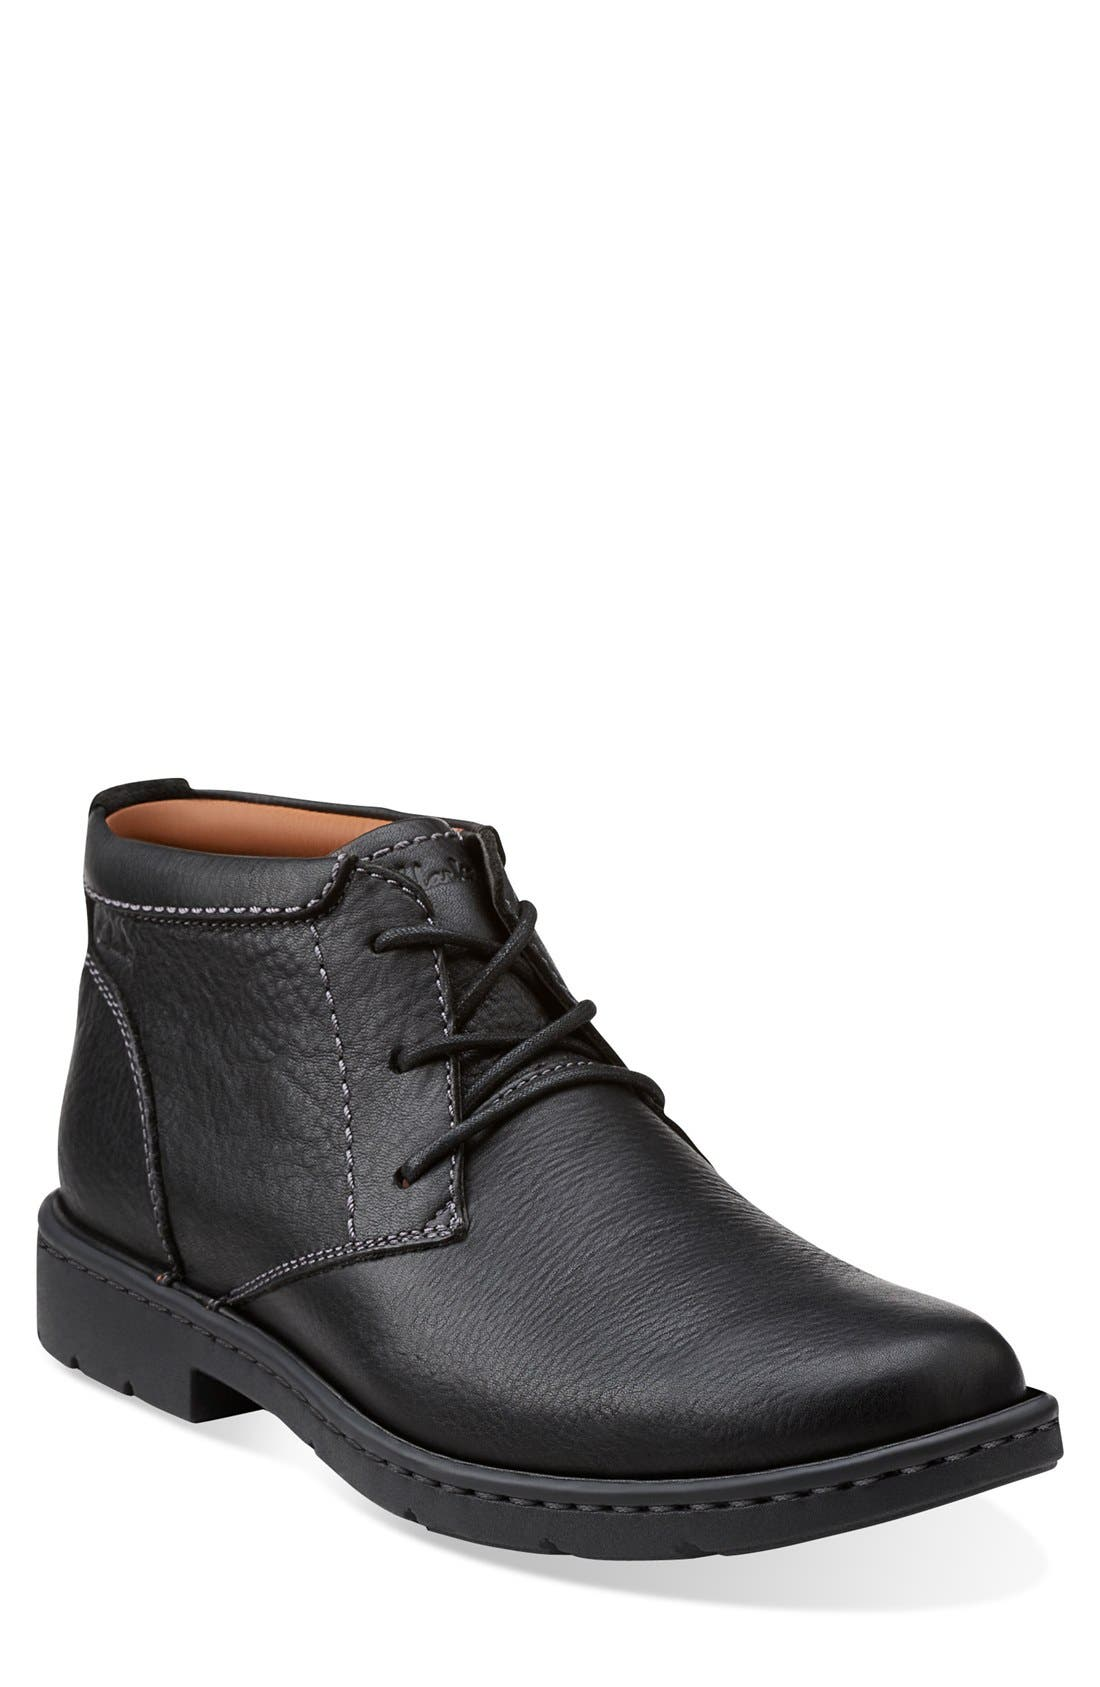 'Stratton - Limit' Plain Toe Boot,                         Main,                         color, 001